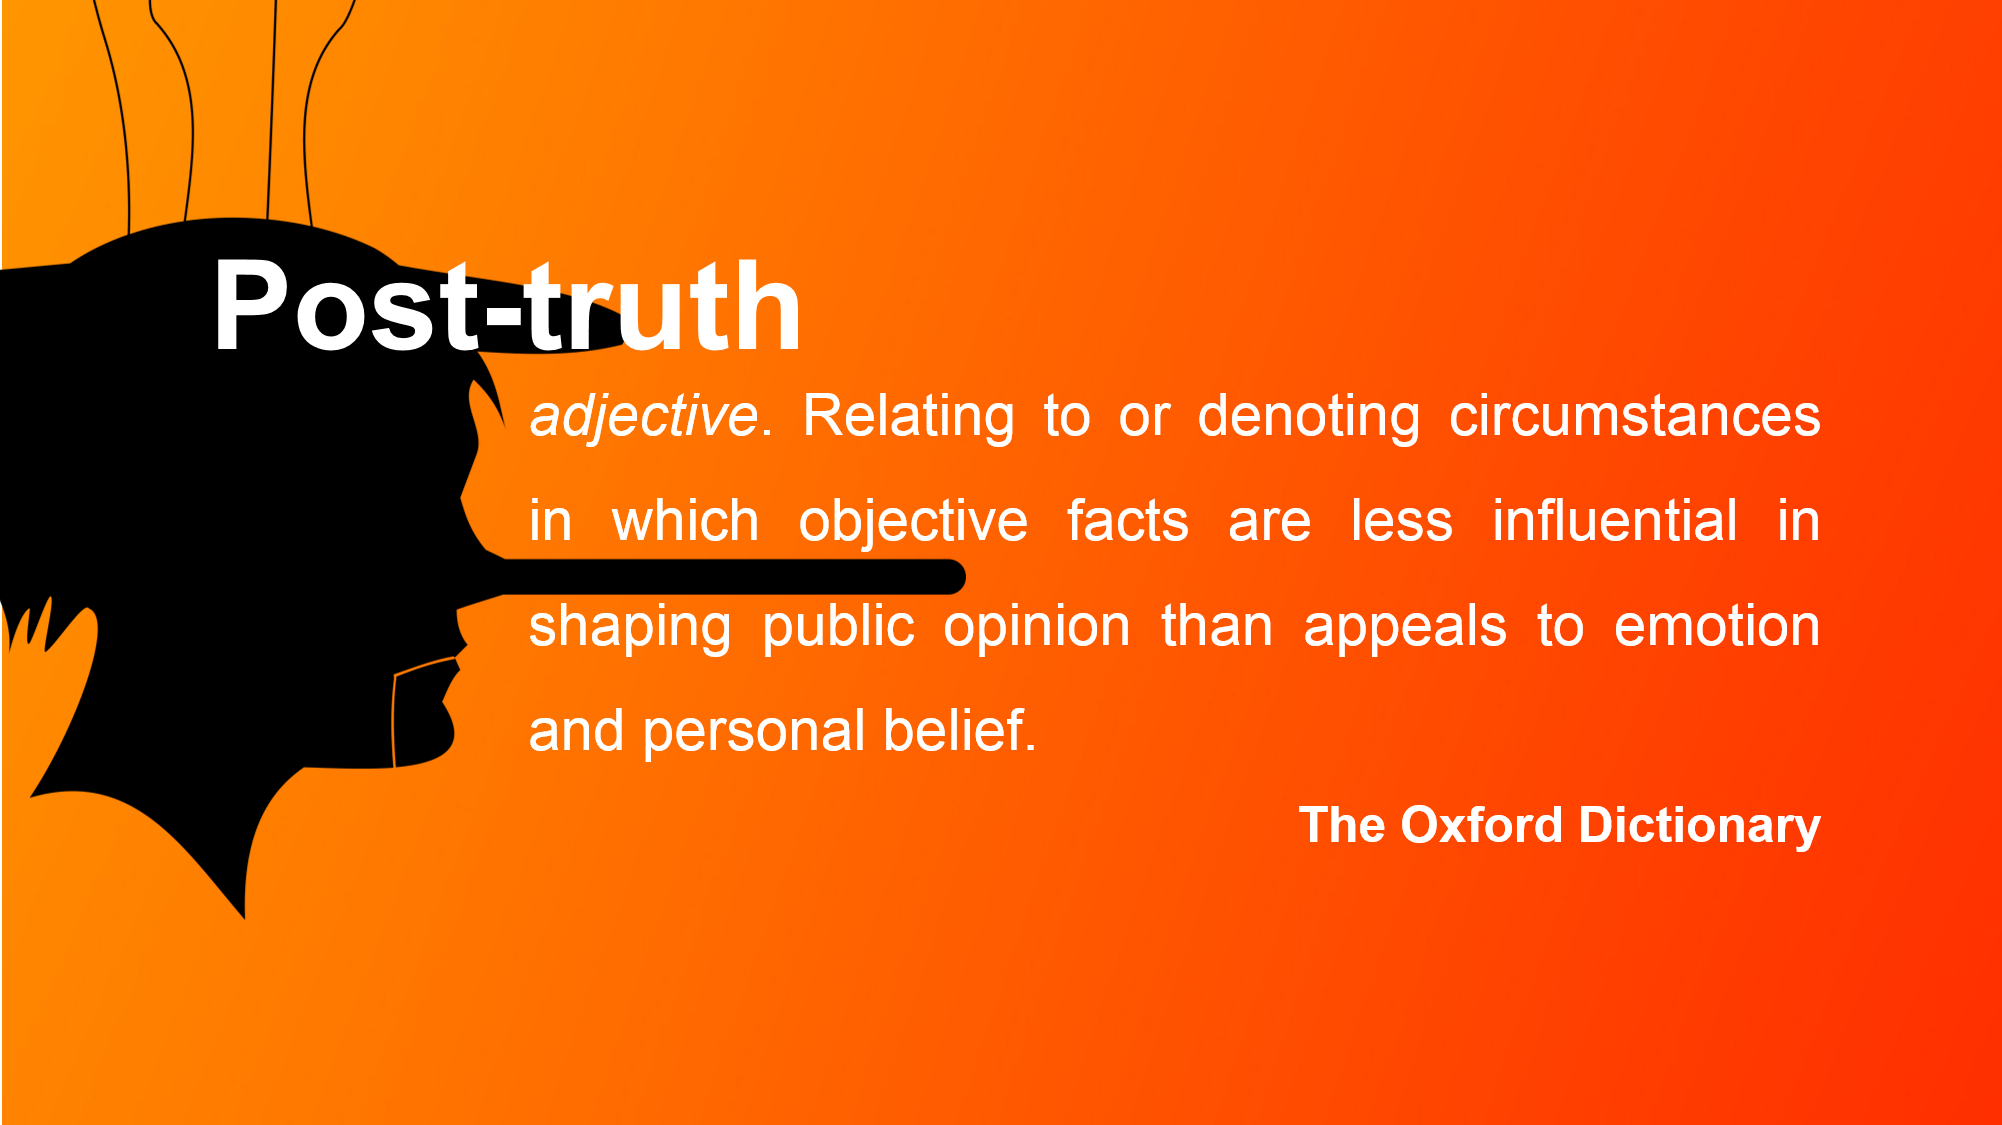 Silouhetter of Pinocchio and the definition of Post-truth